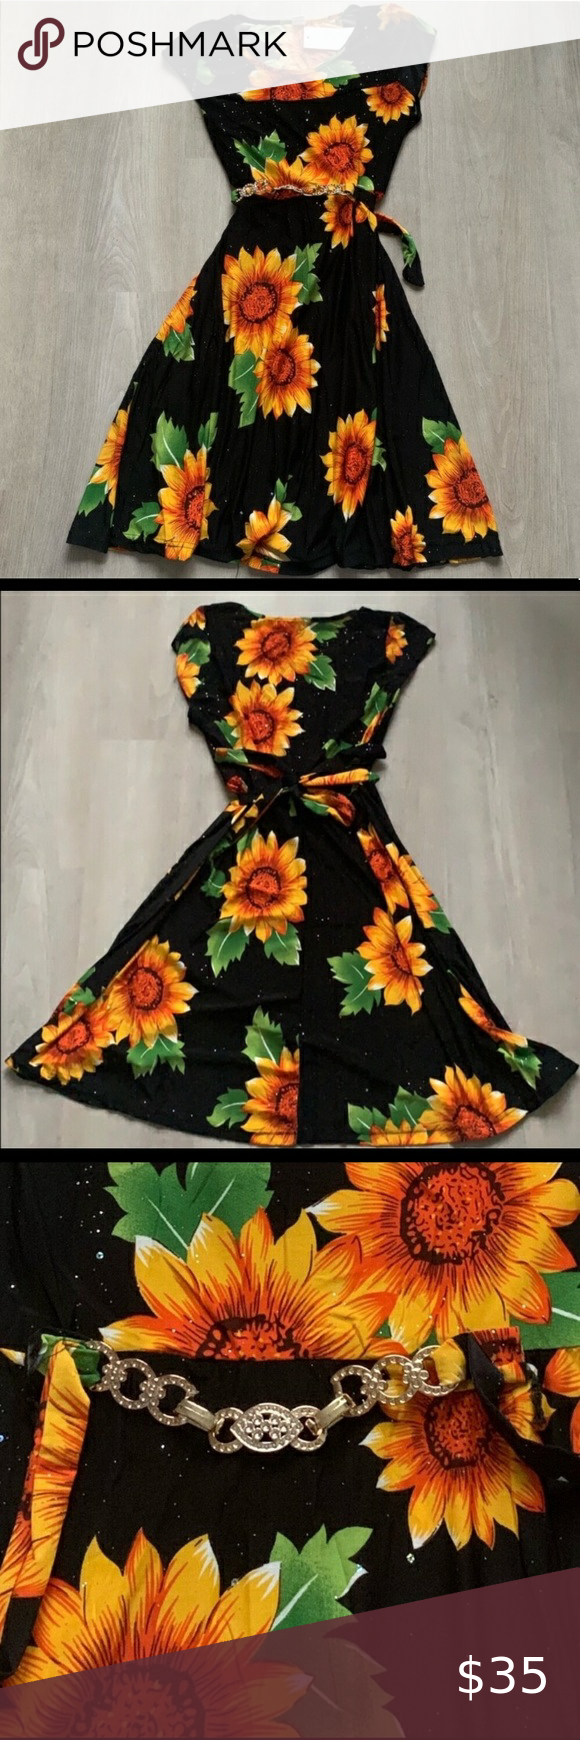 Sunflower Dress Beautiful Midi Sunflower Dress This Dress Is Lightweight Has Pretty Sparkles And A Real In 2020 Sunflower Dress Floral Boutique Dress Floral Midi Dress [ 1740 x 580 Pixel ]